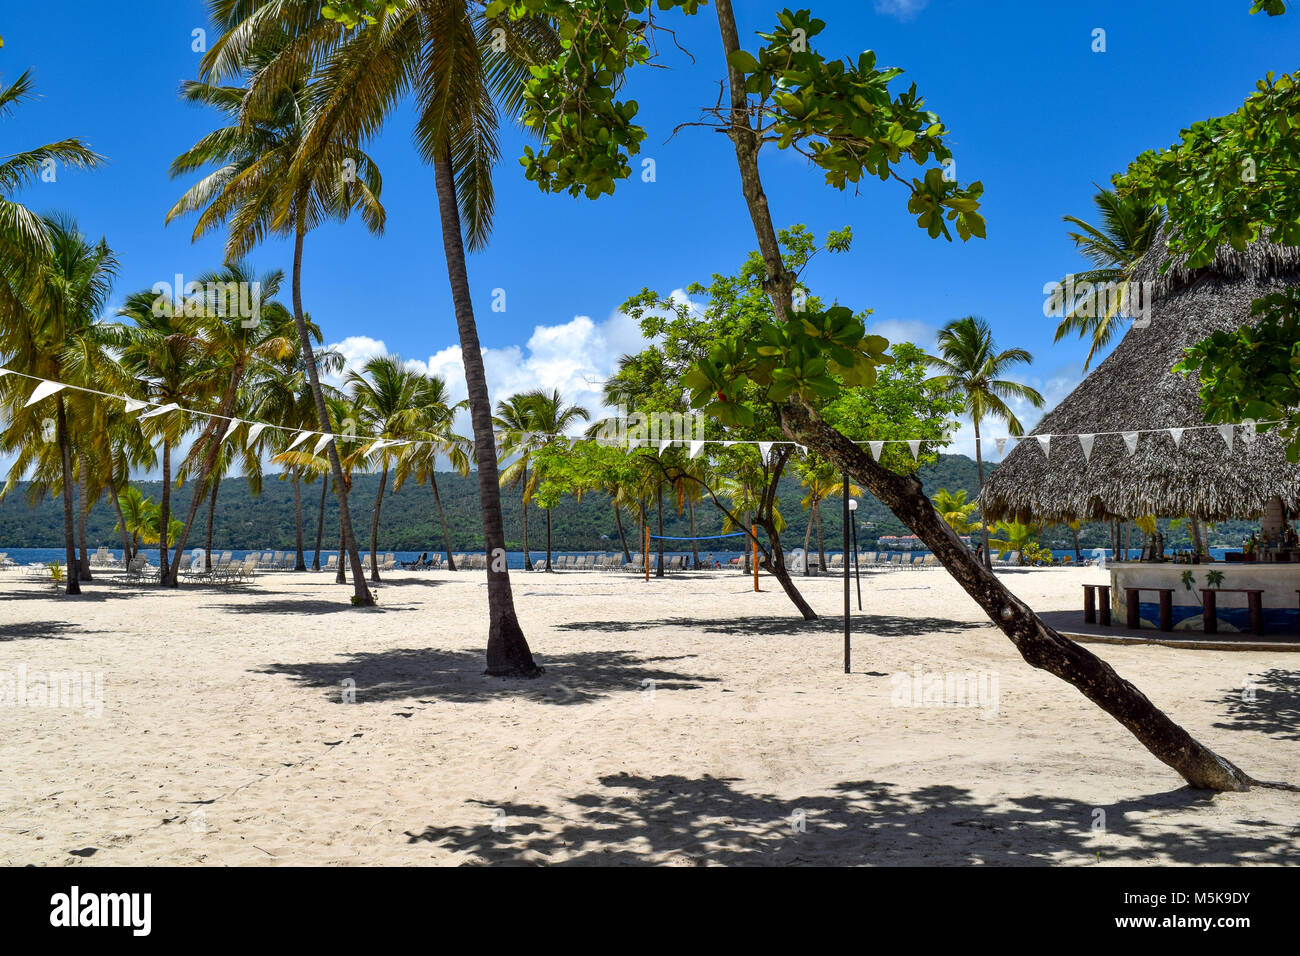 White beach with sunbeds, many palms, blue sky and a beach bar in the caribbean sea, Dominican Republic - Stock Image